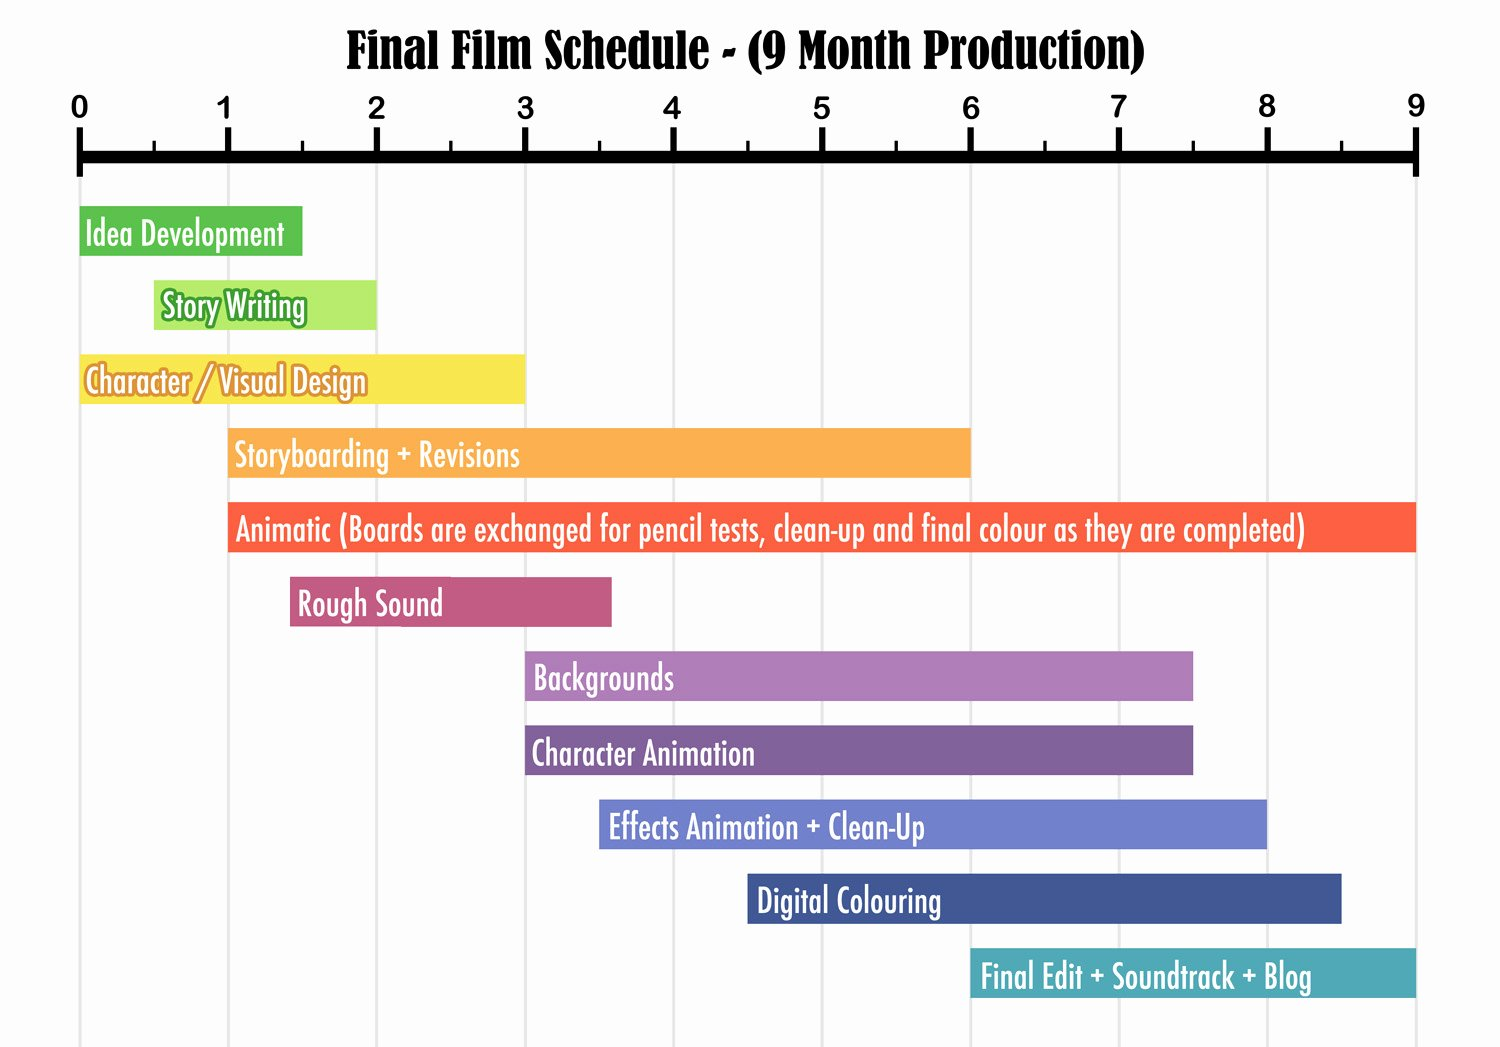 Film Production Schedule Template Unique Acorns A Short Film by Gemma Roberts Schedule